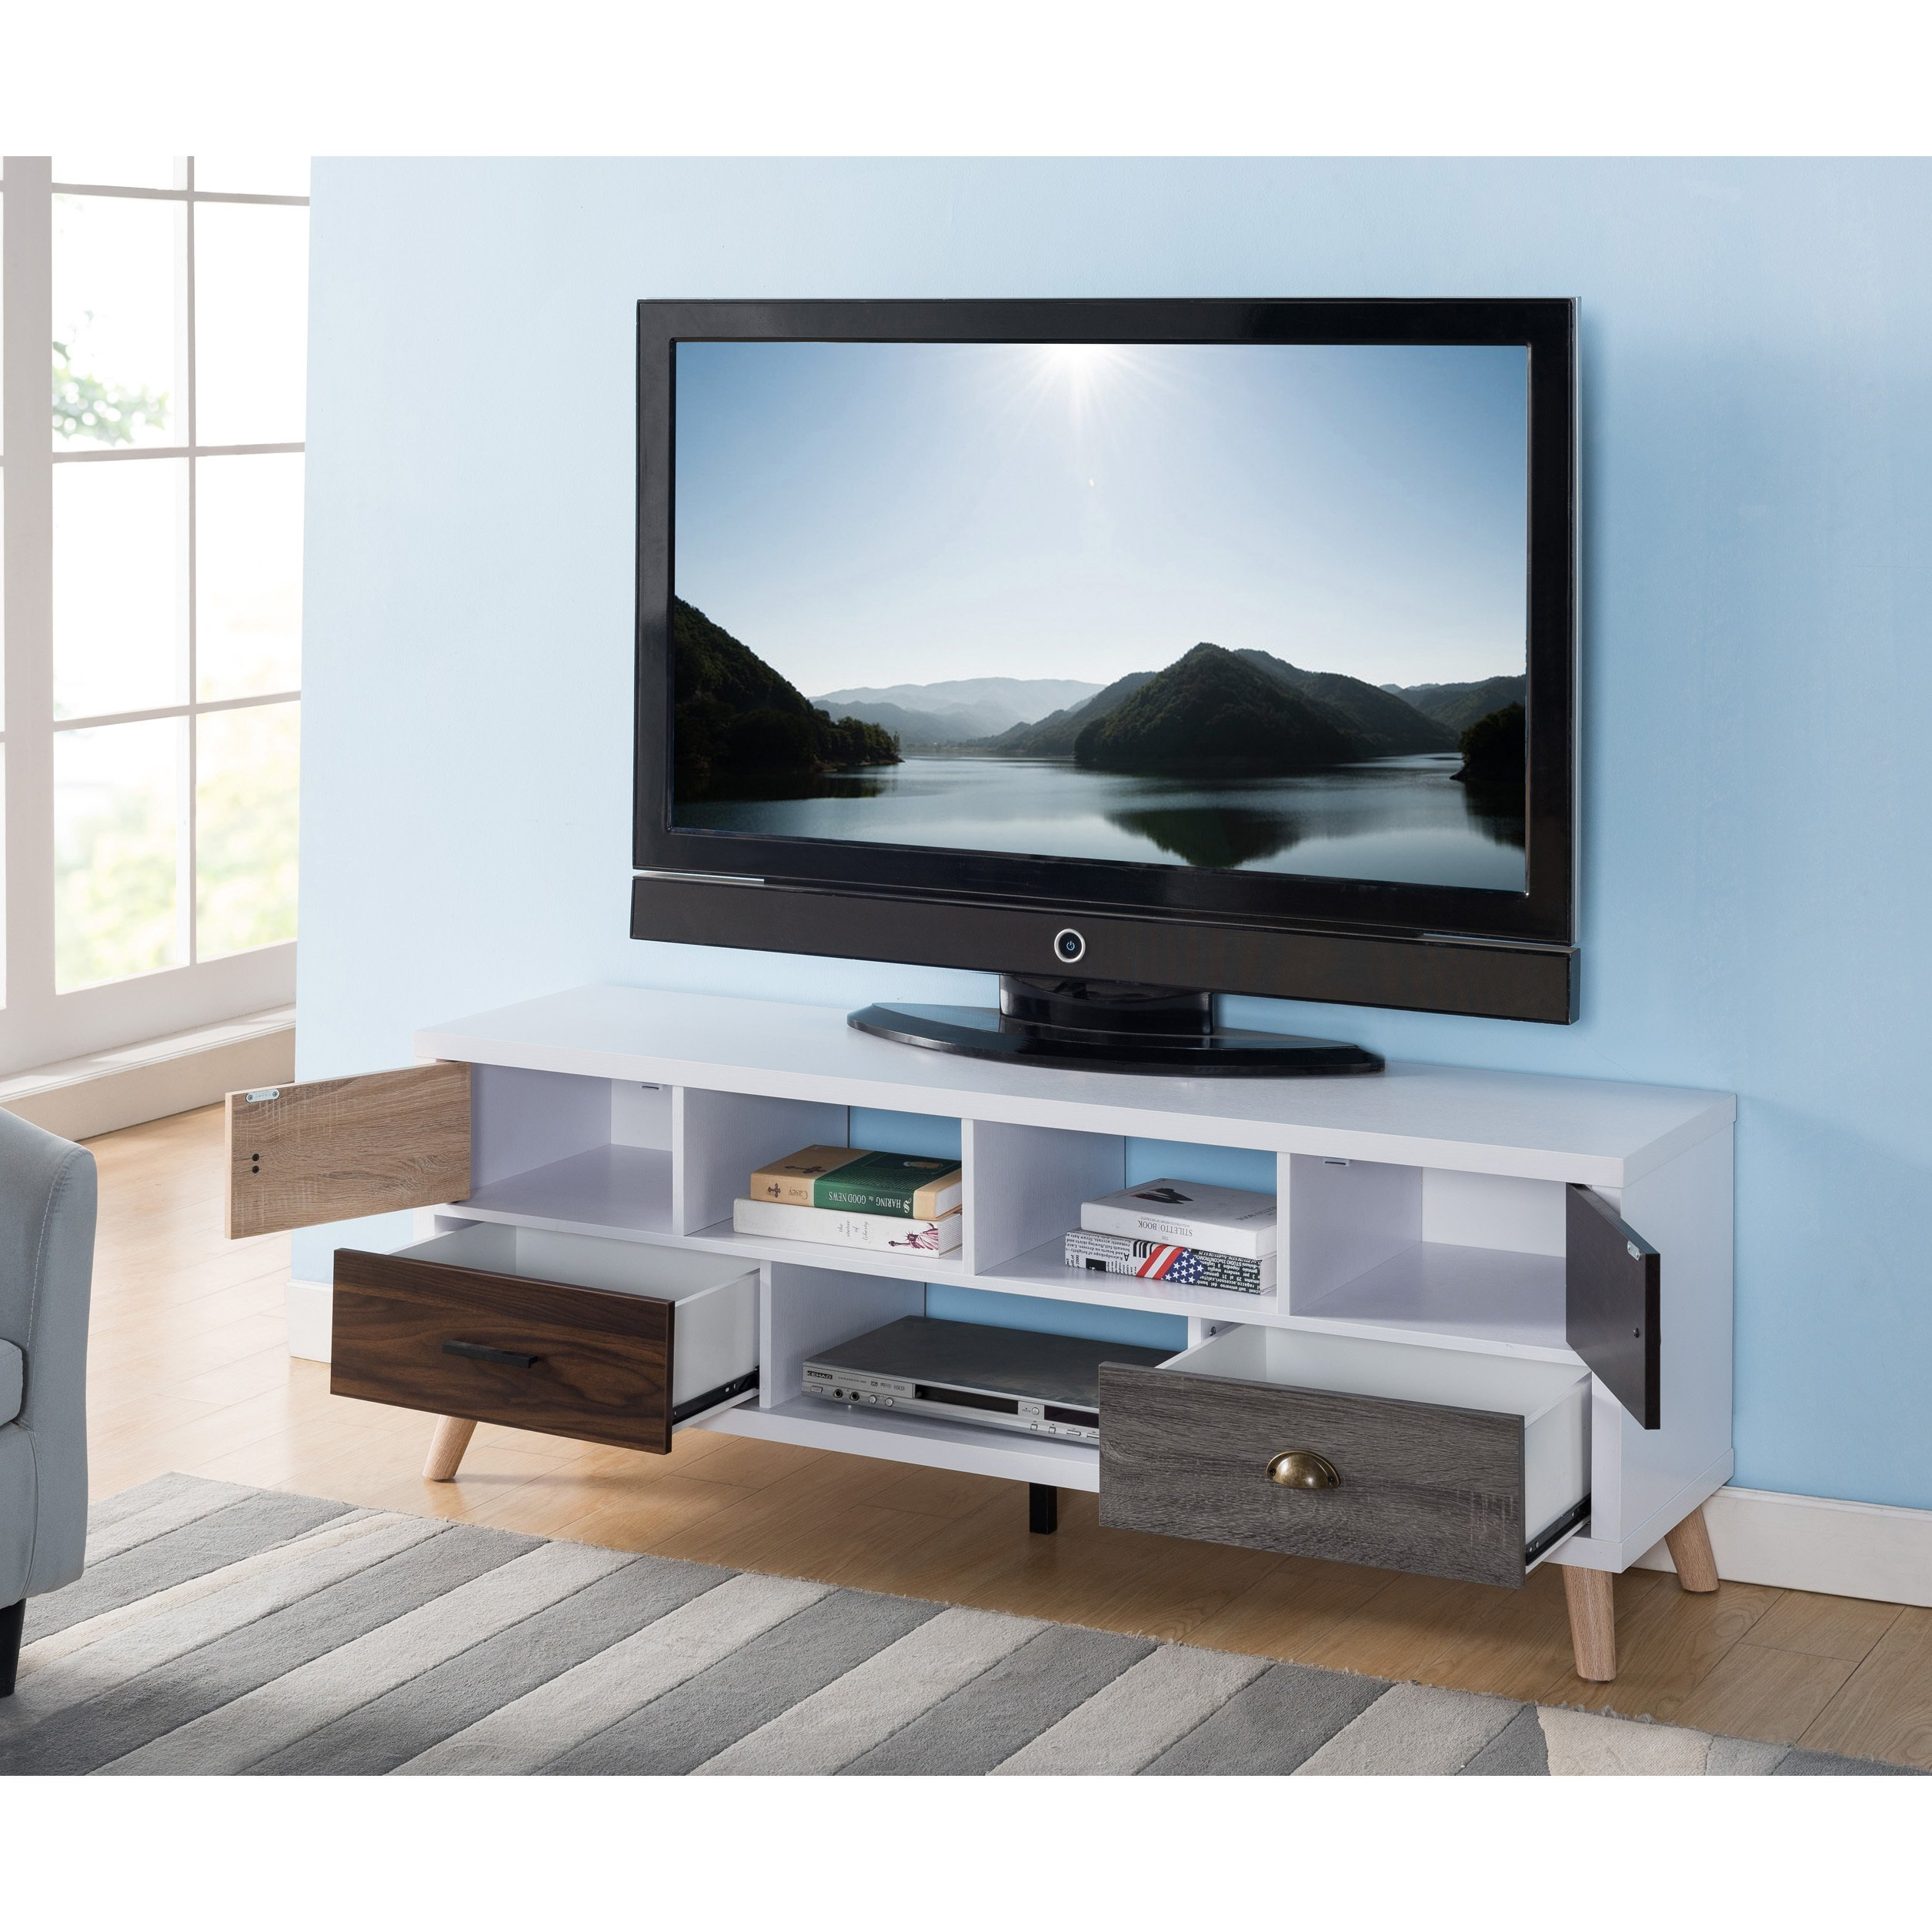 Furniture Of America Kristen Mid-Century Modern Multicolored Storage within Casey Grey 66 Inch Tv Stands (Image 10 of 30)